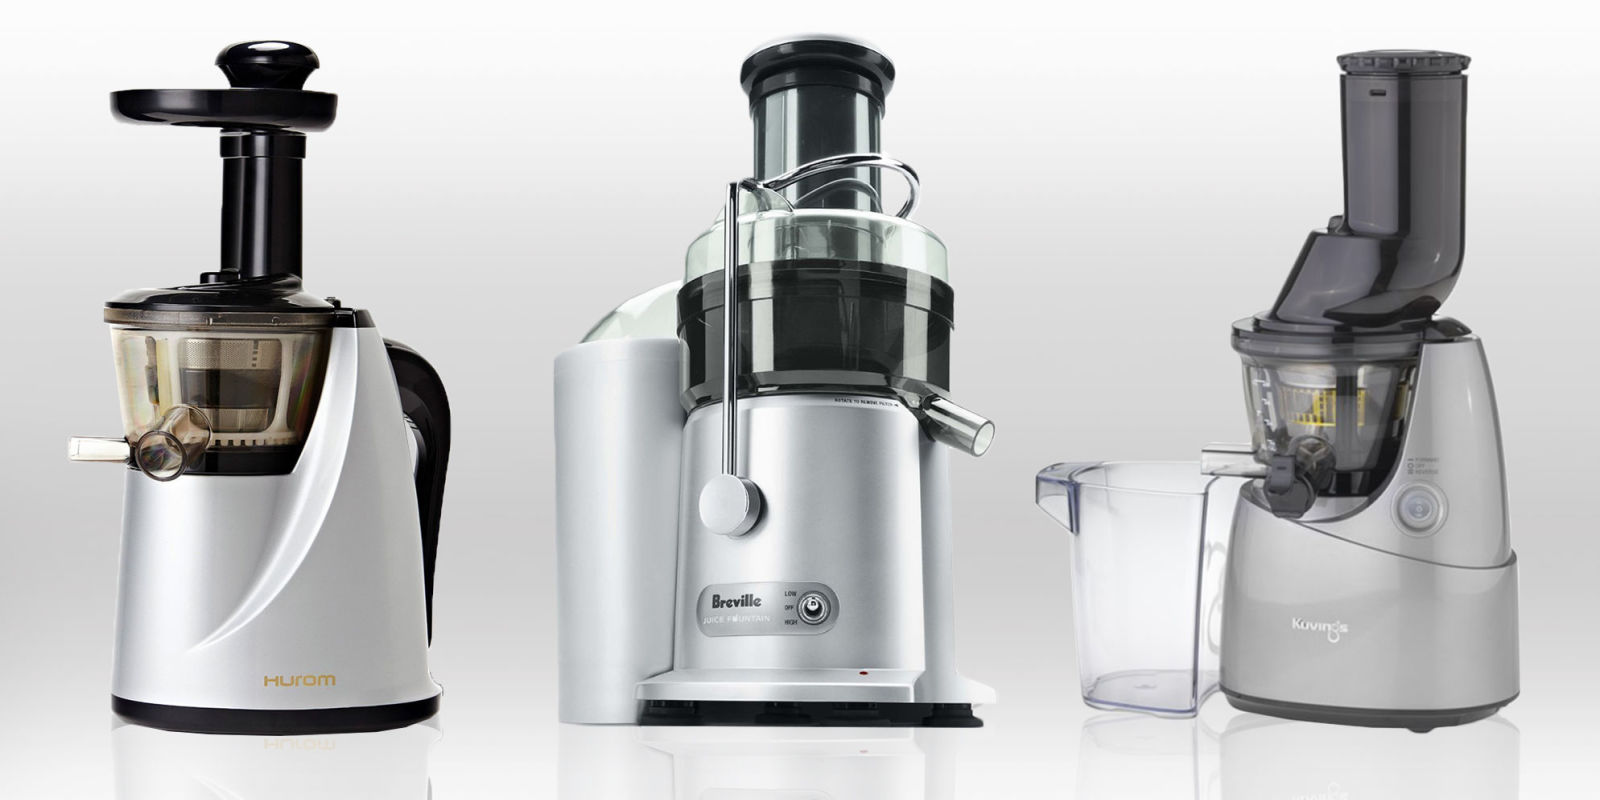 Best Cold Press Slow Juicer : 8 Best Cold Press Juicers in 2017 - Slow and Masticating Juicer Machines